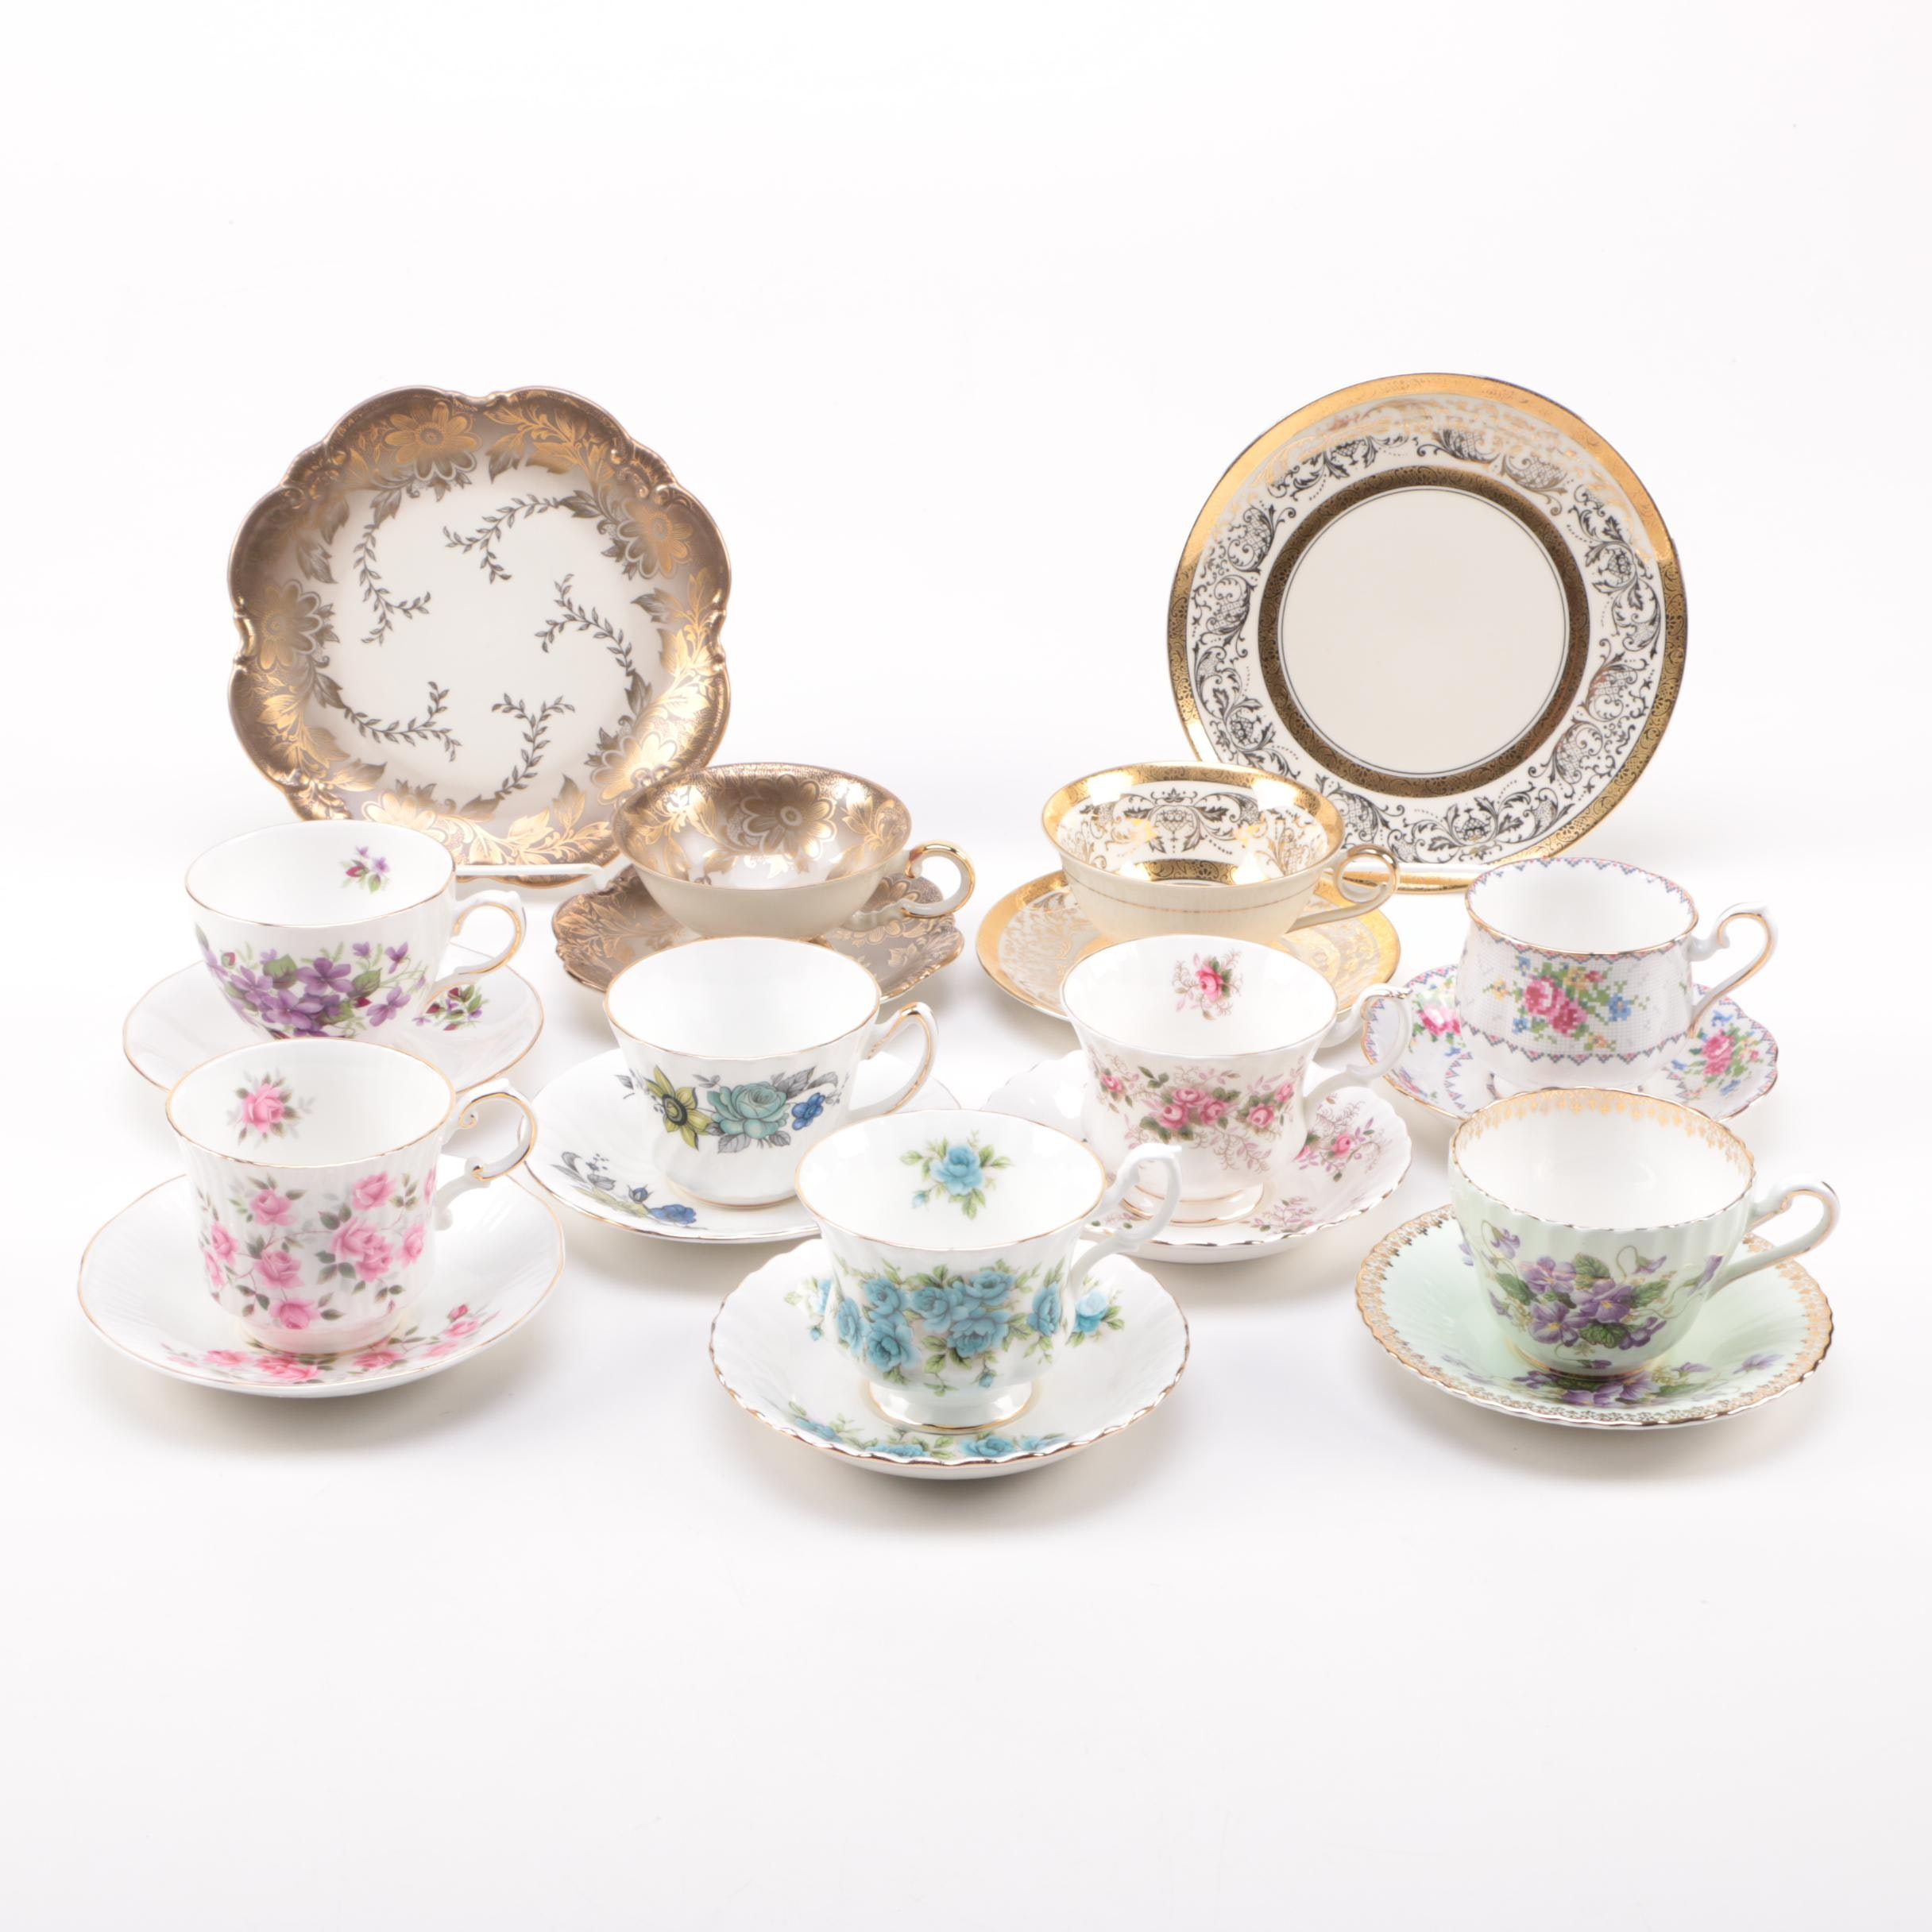 Assortment of Ceramic Floral Teacups and Saucers